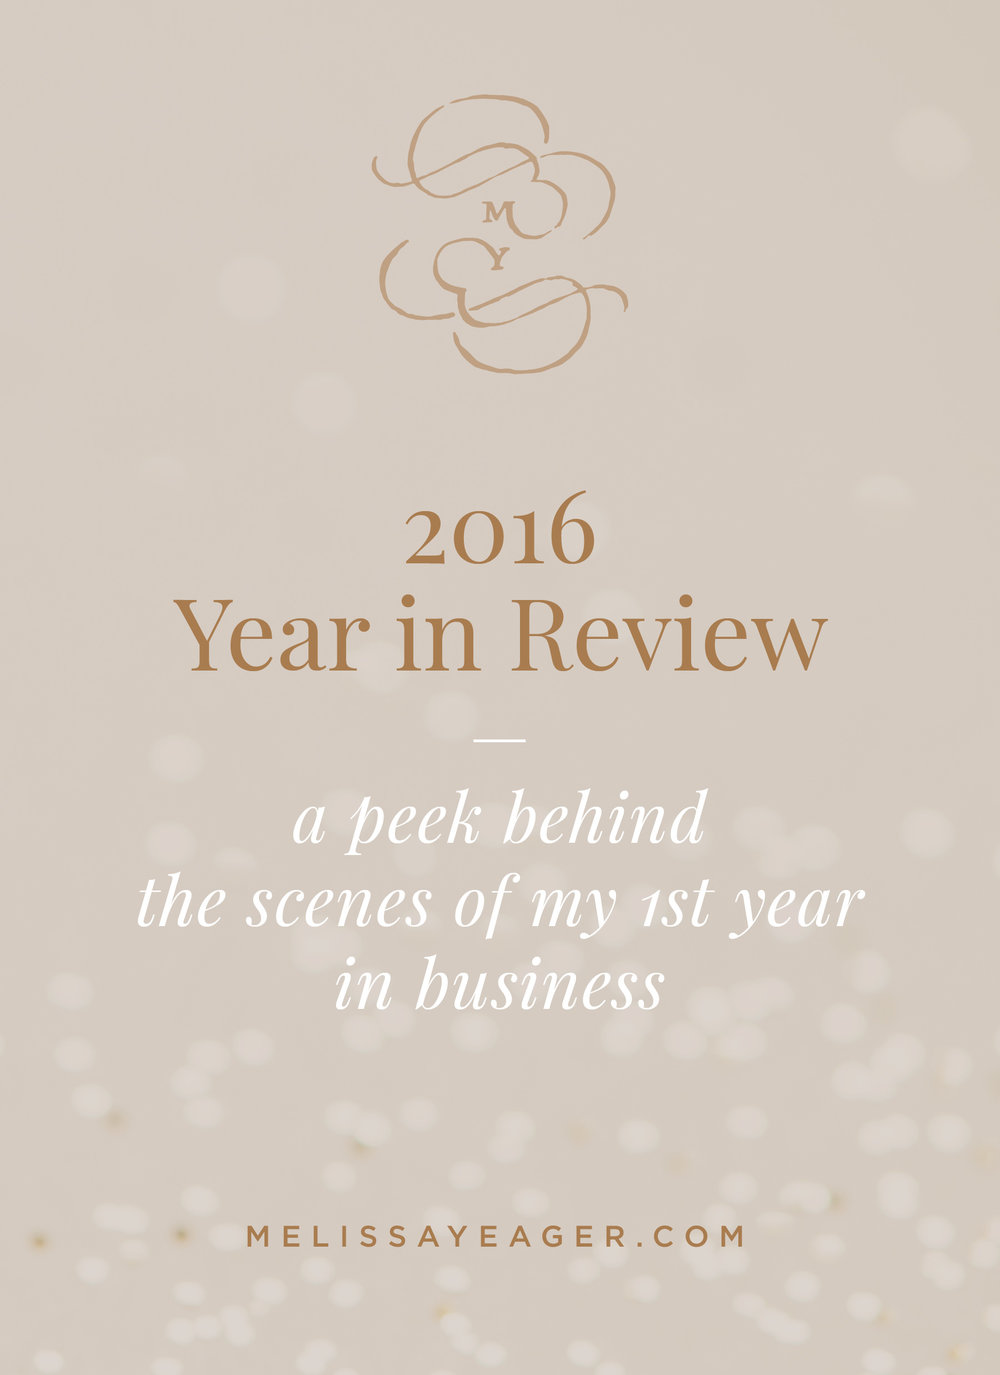 2016 Year in Review - a peek behind the scenes of my 1st year in business Melissa Yeager